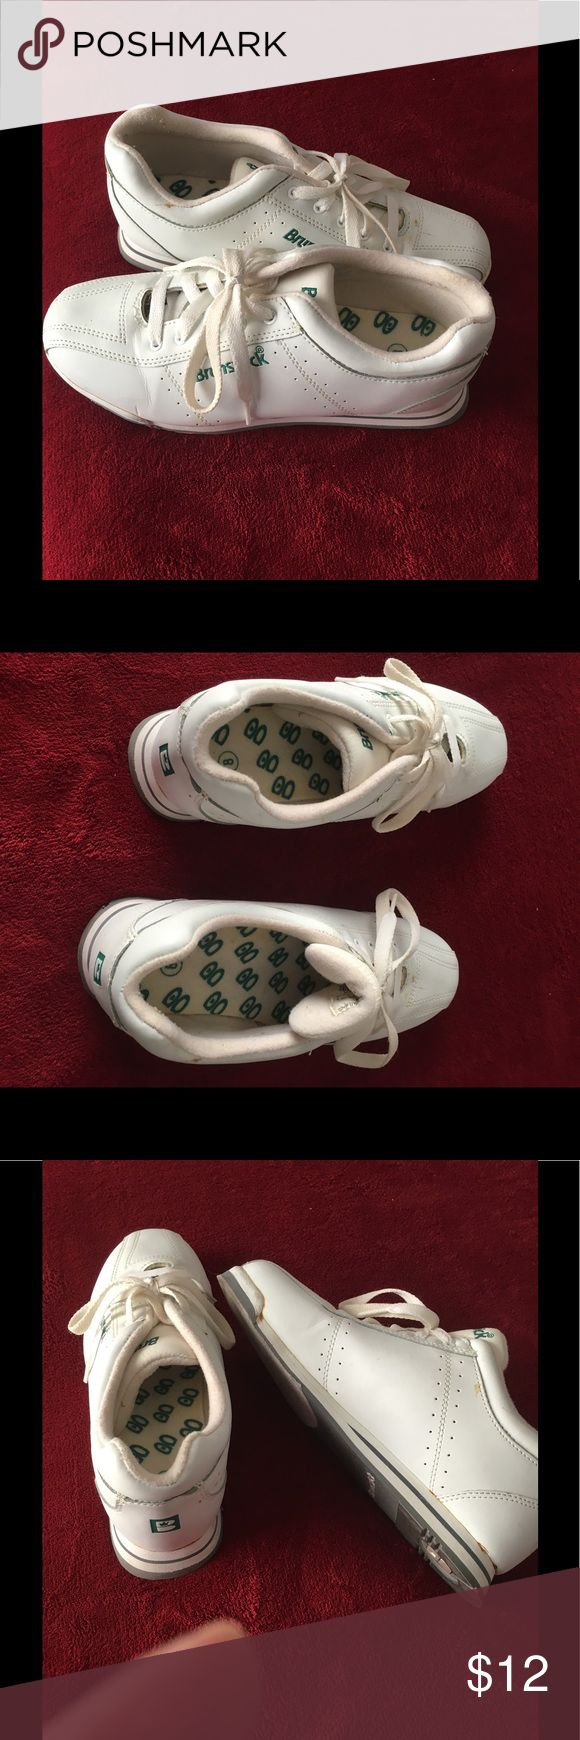 Brunswick bowling shoes! This is a pair of Brunswick bowling shoes, mostly white. In good condition but one of the shoes has the tongue is loose. I bought these new, only wore a few times. brunswick Shoes Sneakers